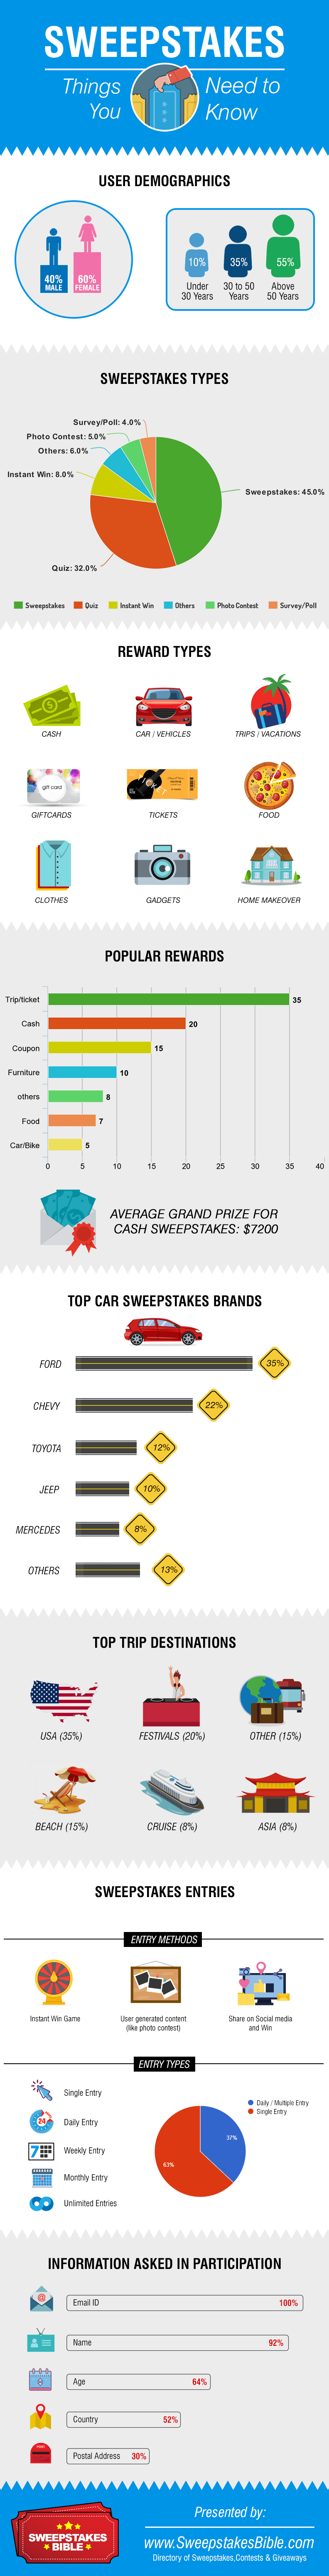 Sweepstakes - Things you need to know